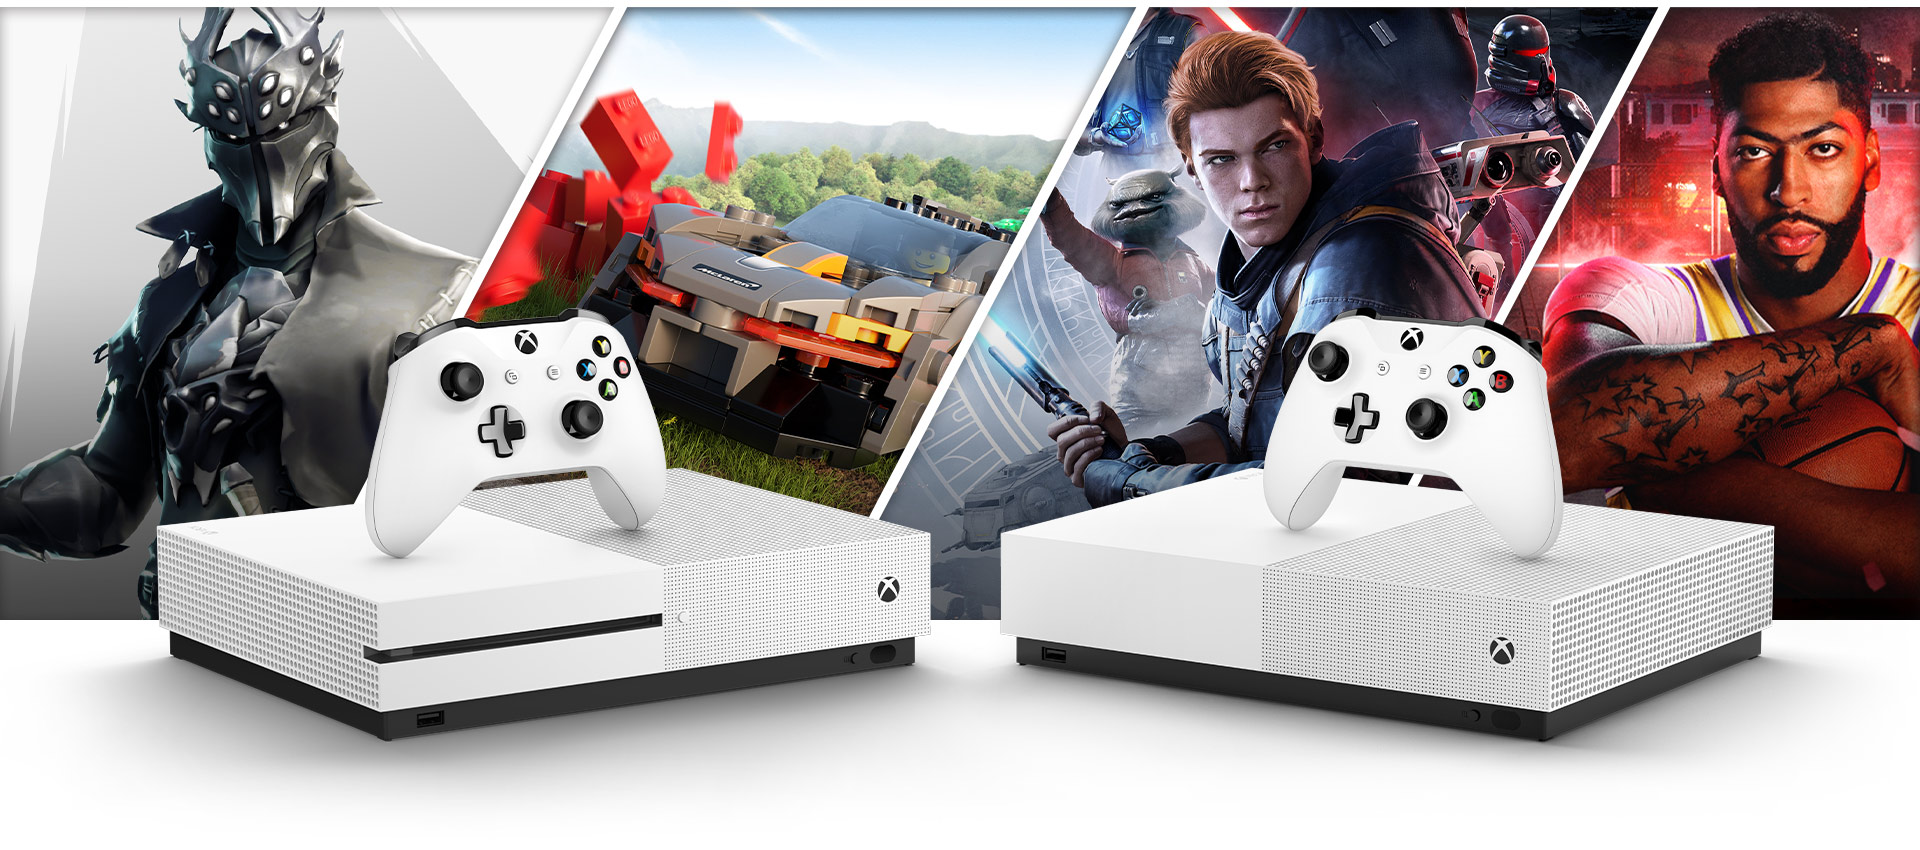 Grafikk fra Fortnite, Forza Horizon 4, Star Wars Jedi Fallen Order og NBA 2K20 bak en Xbox One S og Xbox One S All Digital Edition